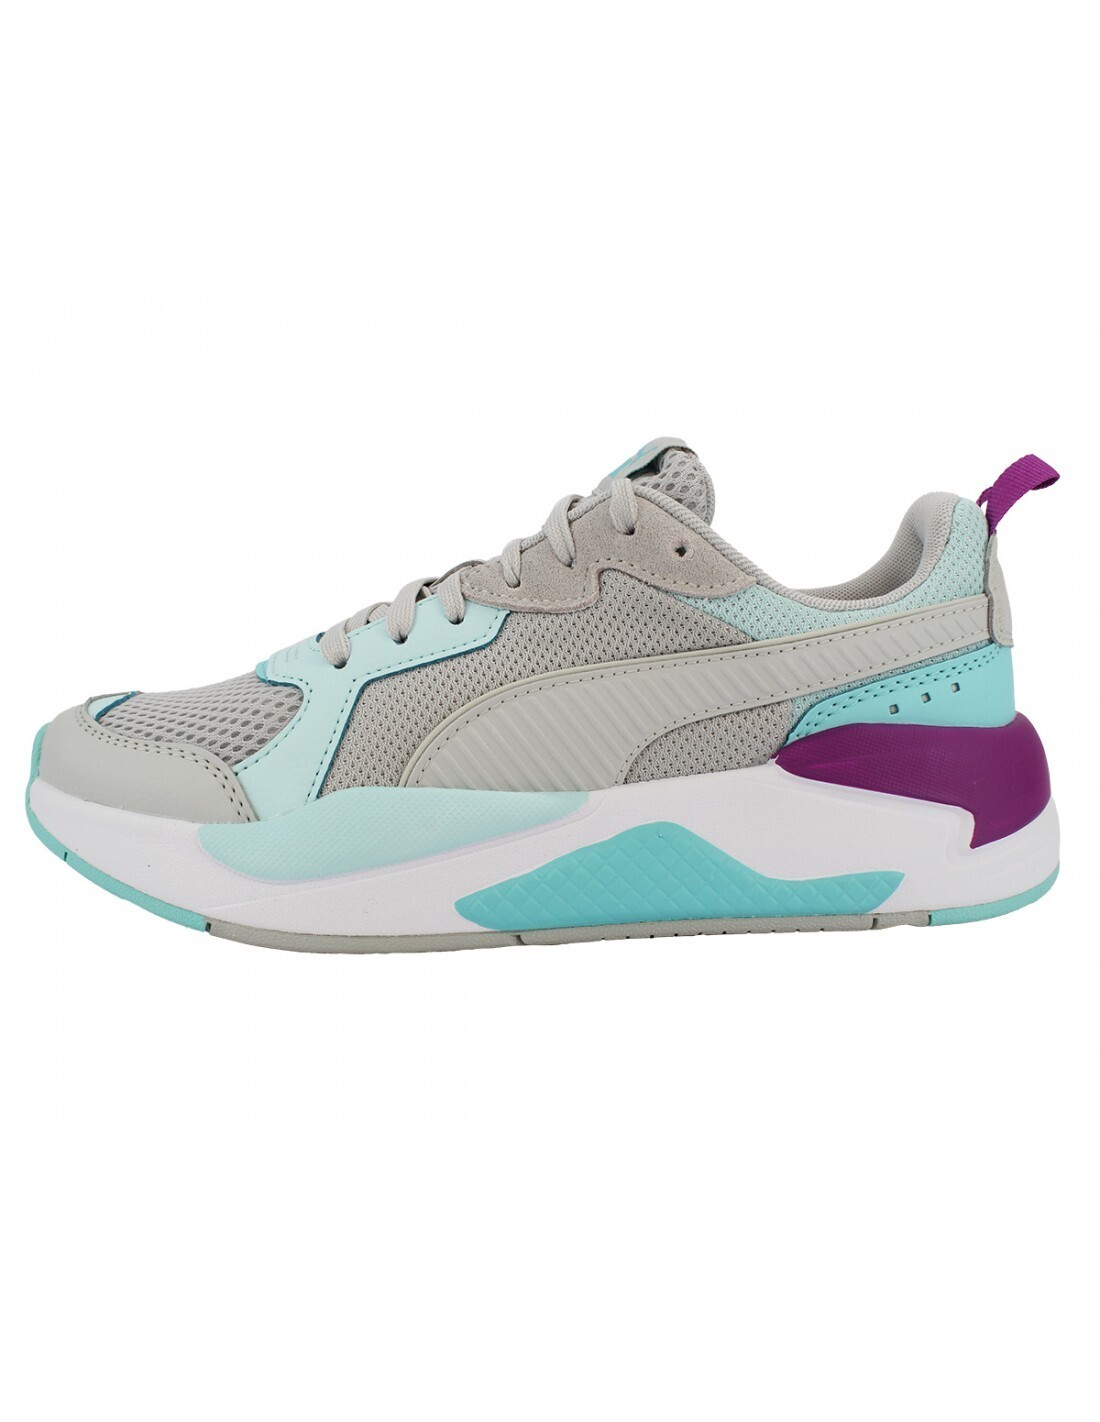 X-ray game sneakers - puma white / grey / blue / violet-37260231